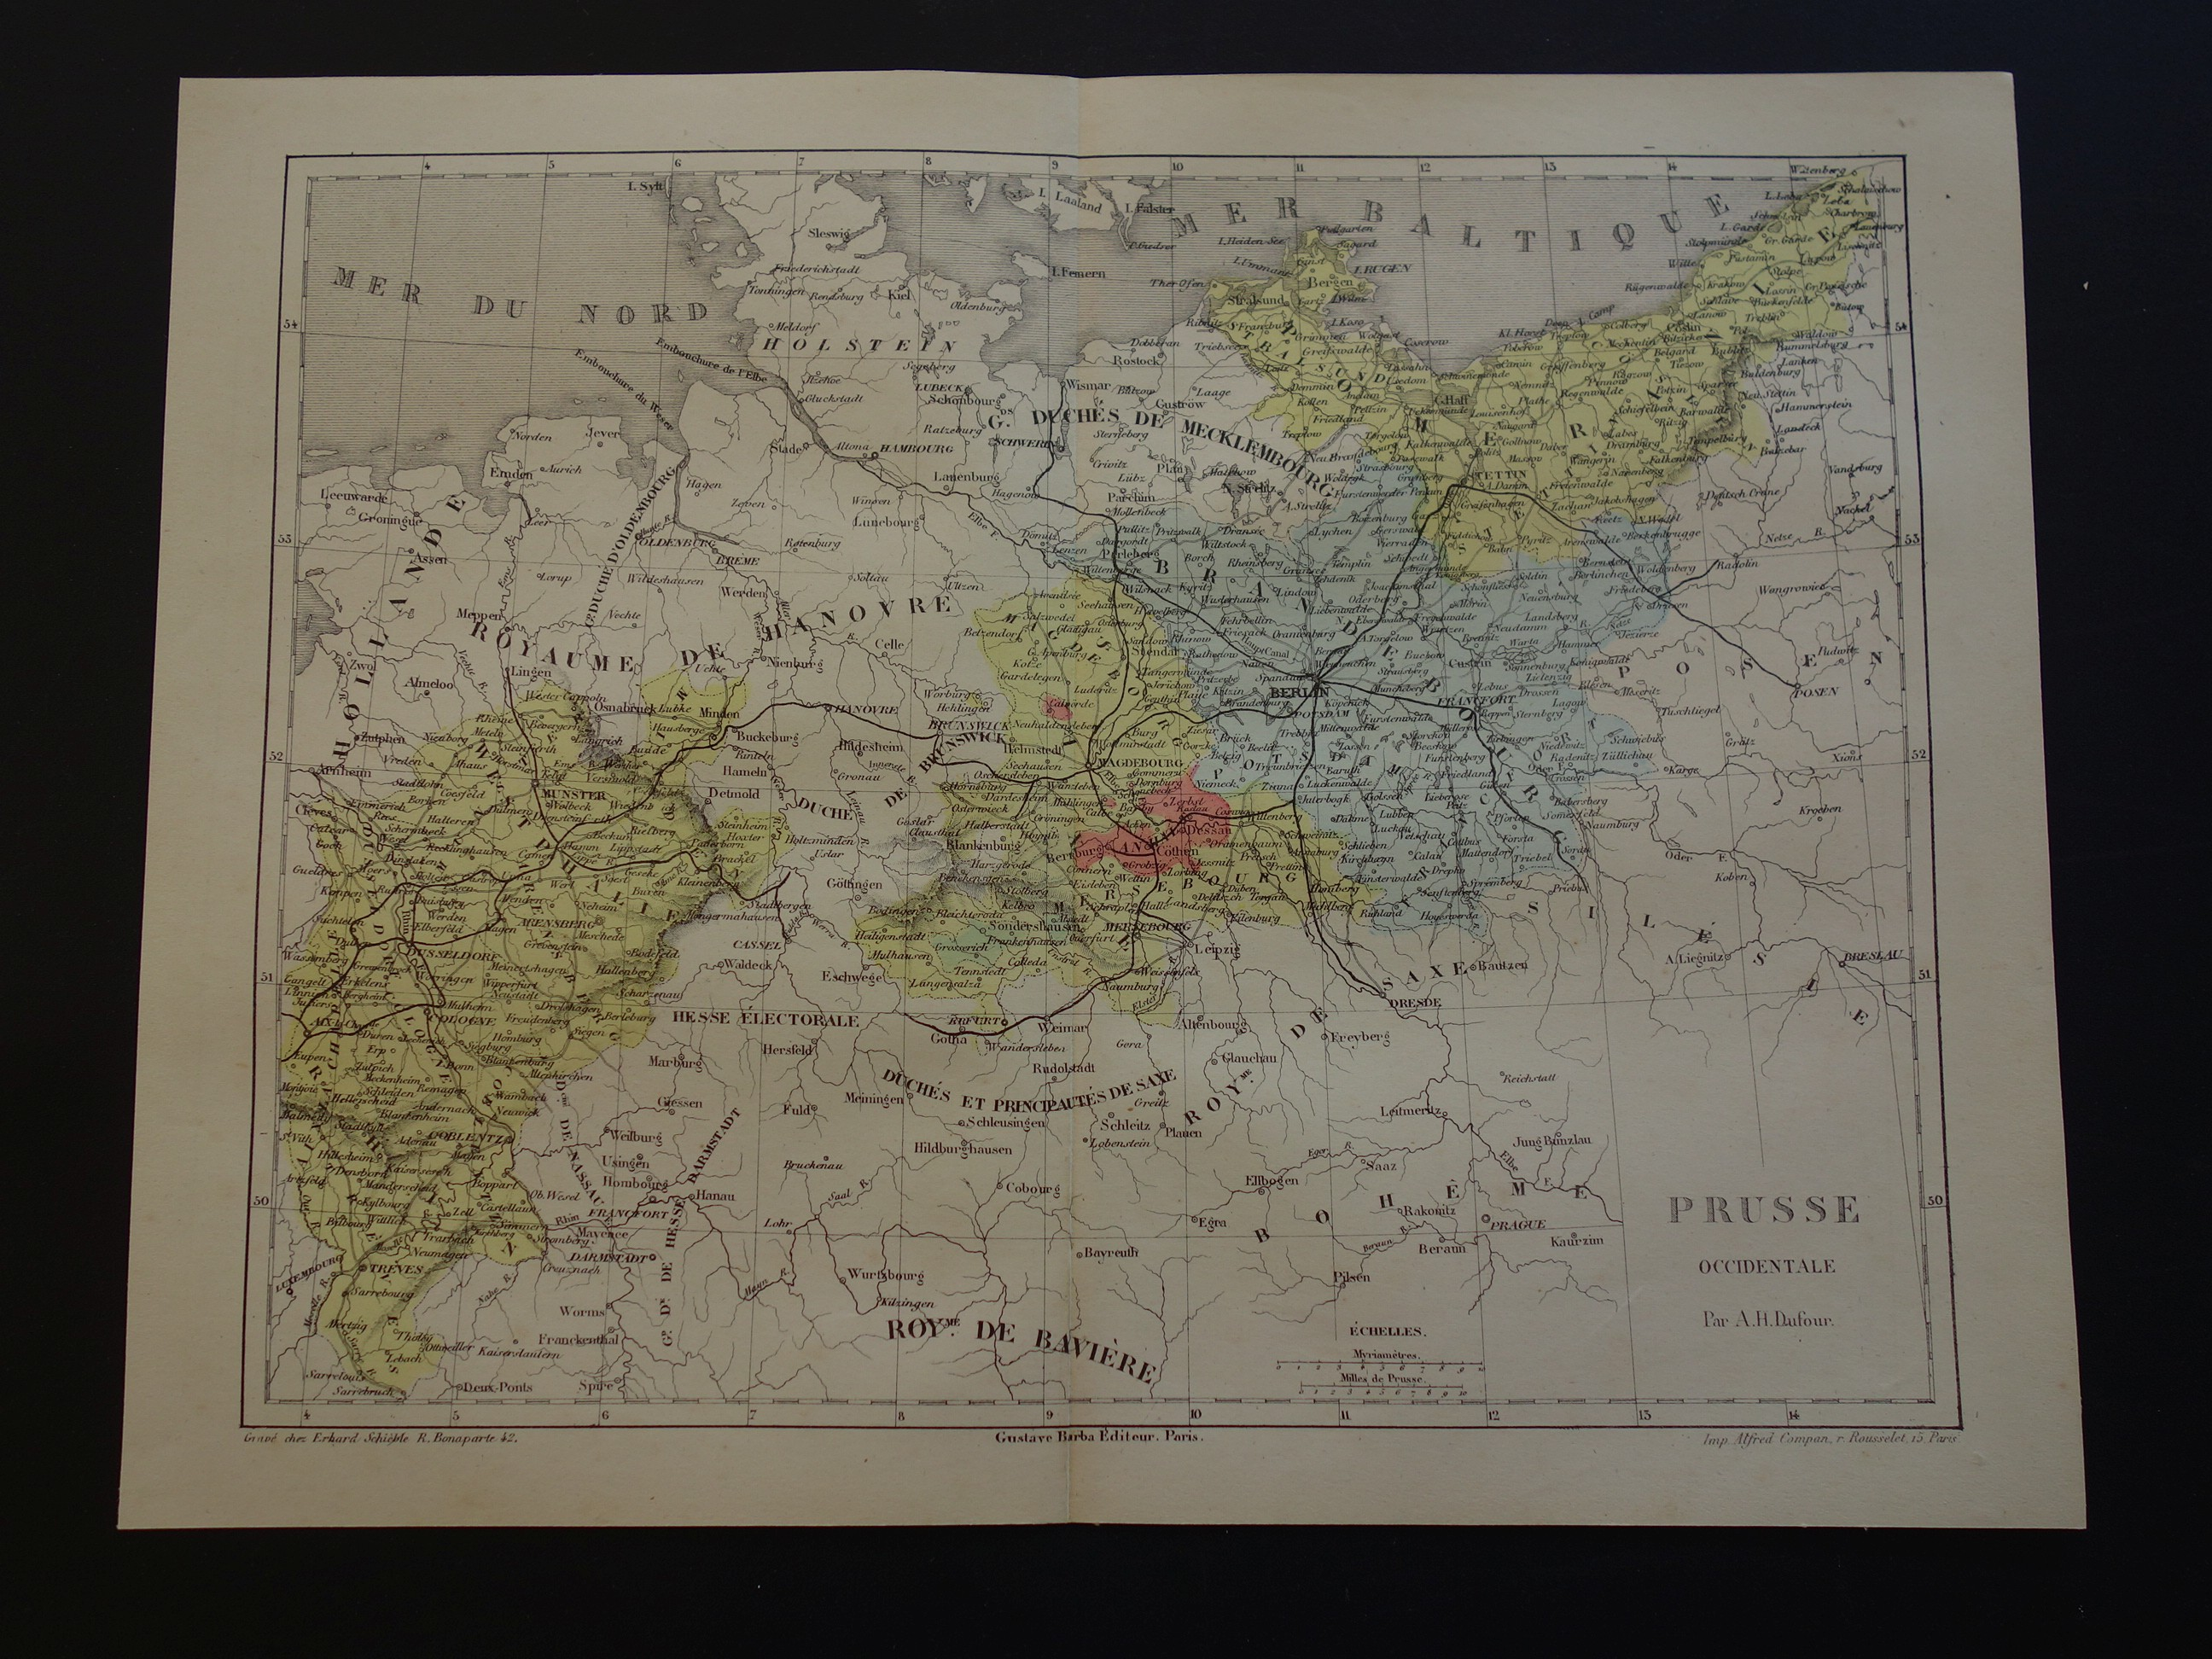 Map Of Germany For Sale.Prussia Antique Map Of Germany Poland 1858 Genuine Vintage French Print About Berlin Szczecin Cologne Vintage Maps 28x37c 11x15 Small Poster